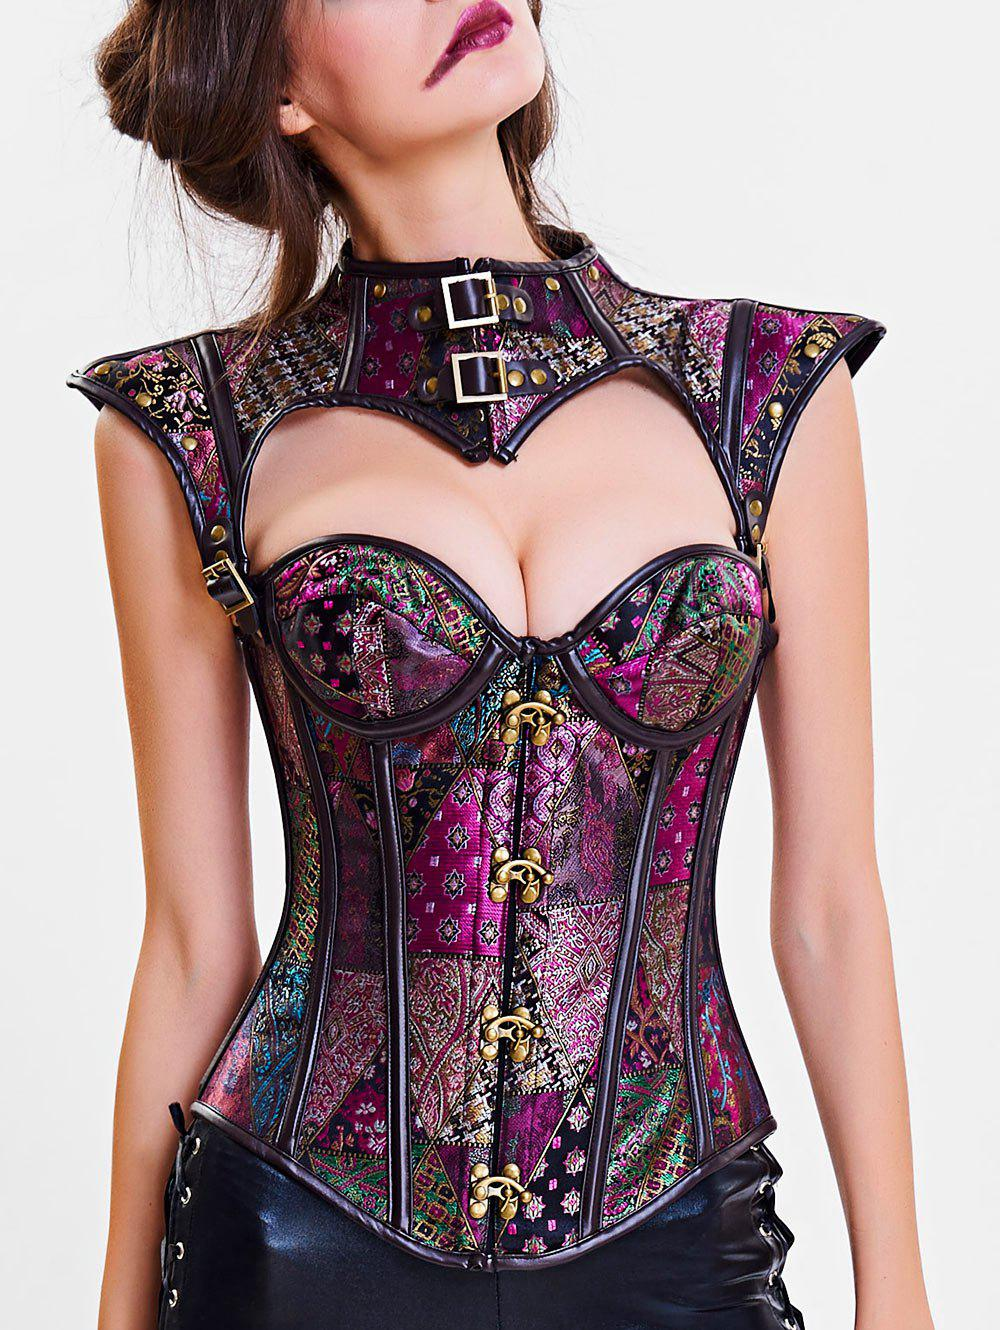 Online Steel Boned Cut Out Corset Vest